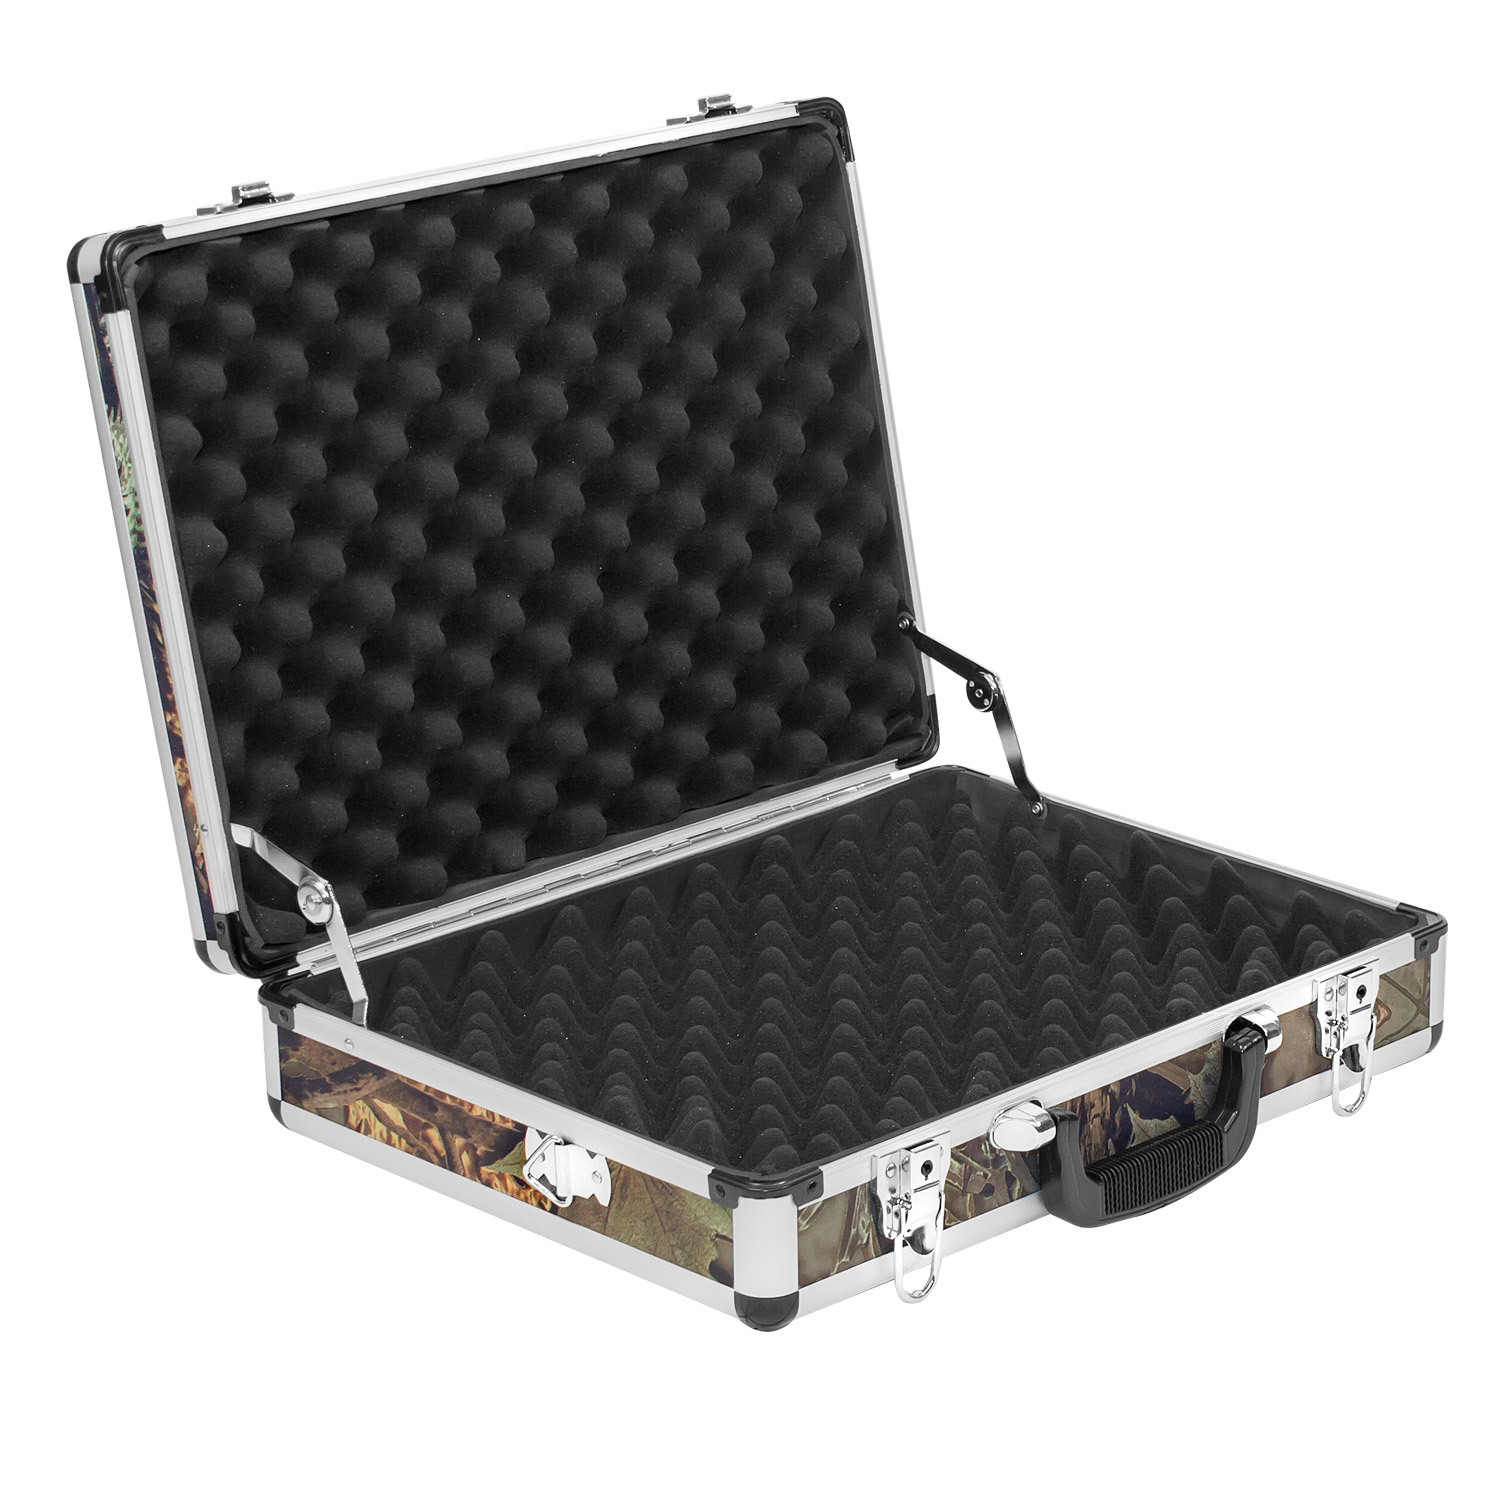 lp 34 tanglewood case 2 Welcome to the digital goja ebay 2 pack lp-e10 batter y + charger for 28d 15h free shipping camera backpack bag case for canon nikon s us $3999 us $45.